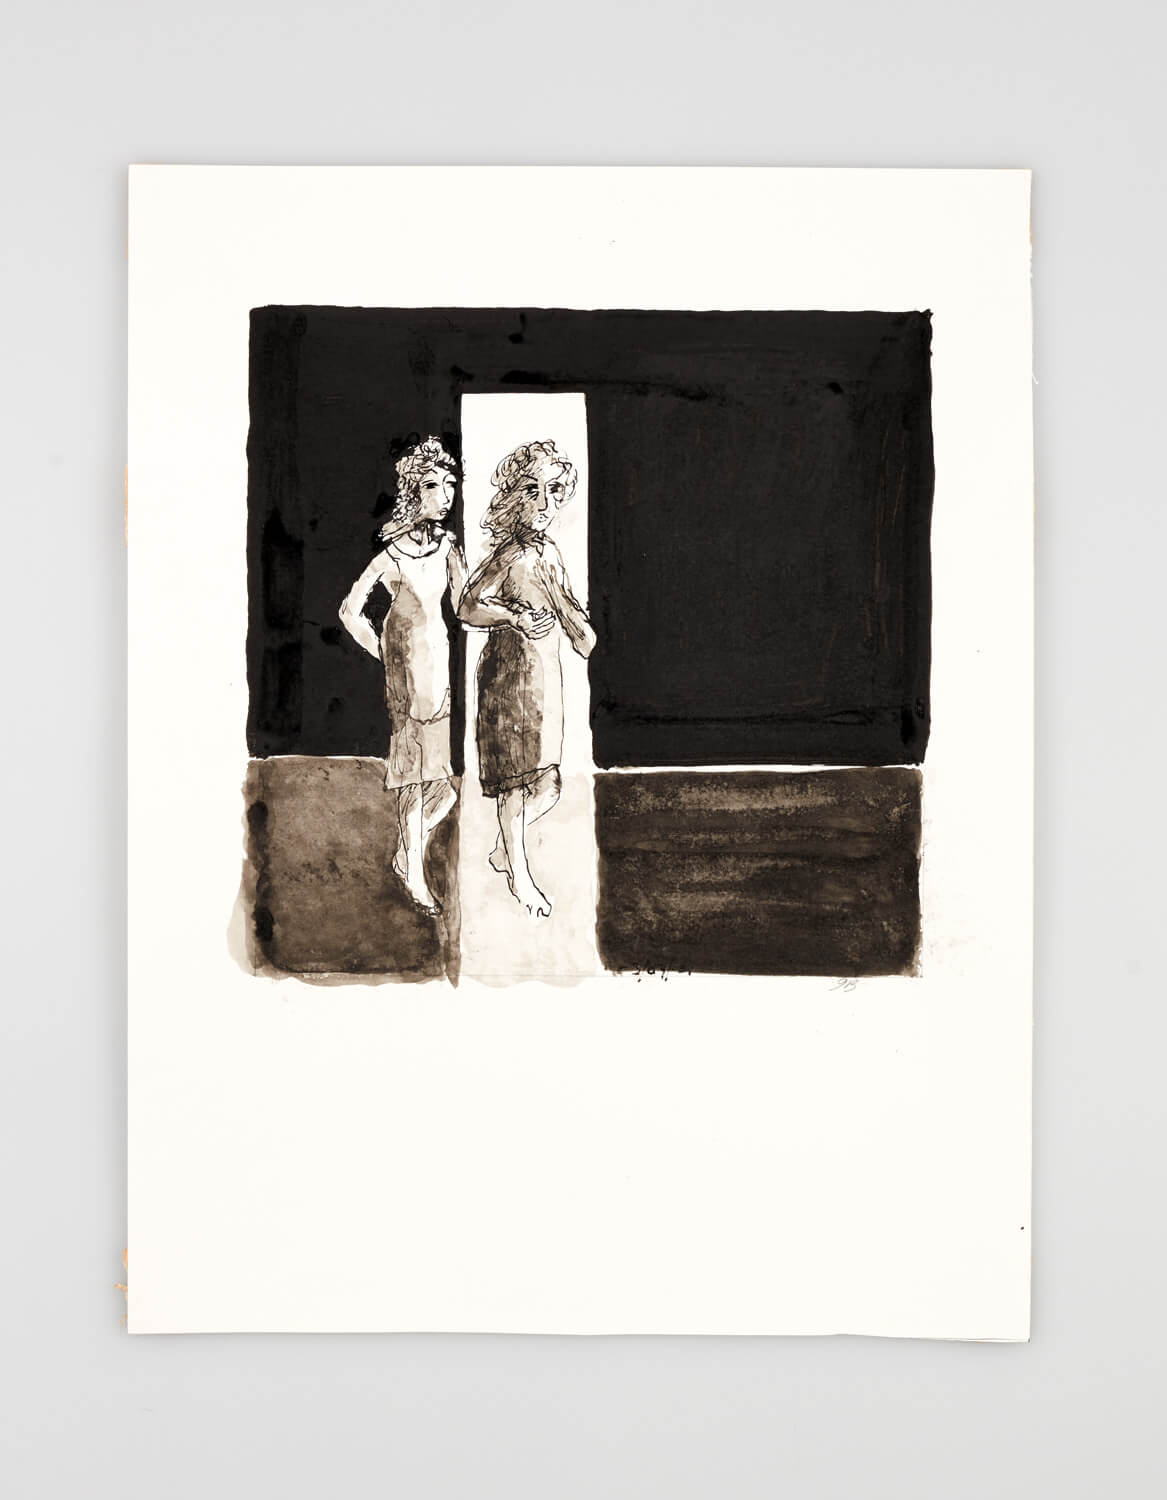 JB009 - Two Women - Come with me - 2001 - 50 x 35 cm - Indian ink and wash on paper